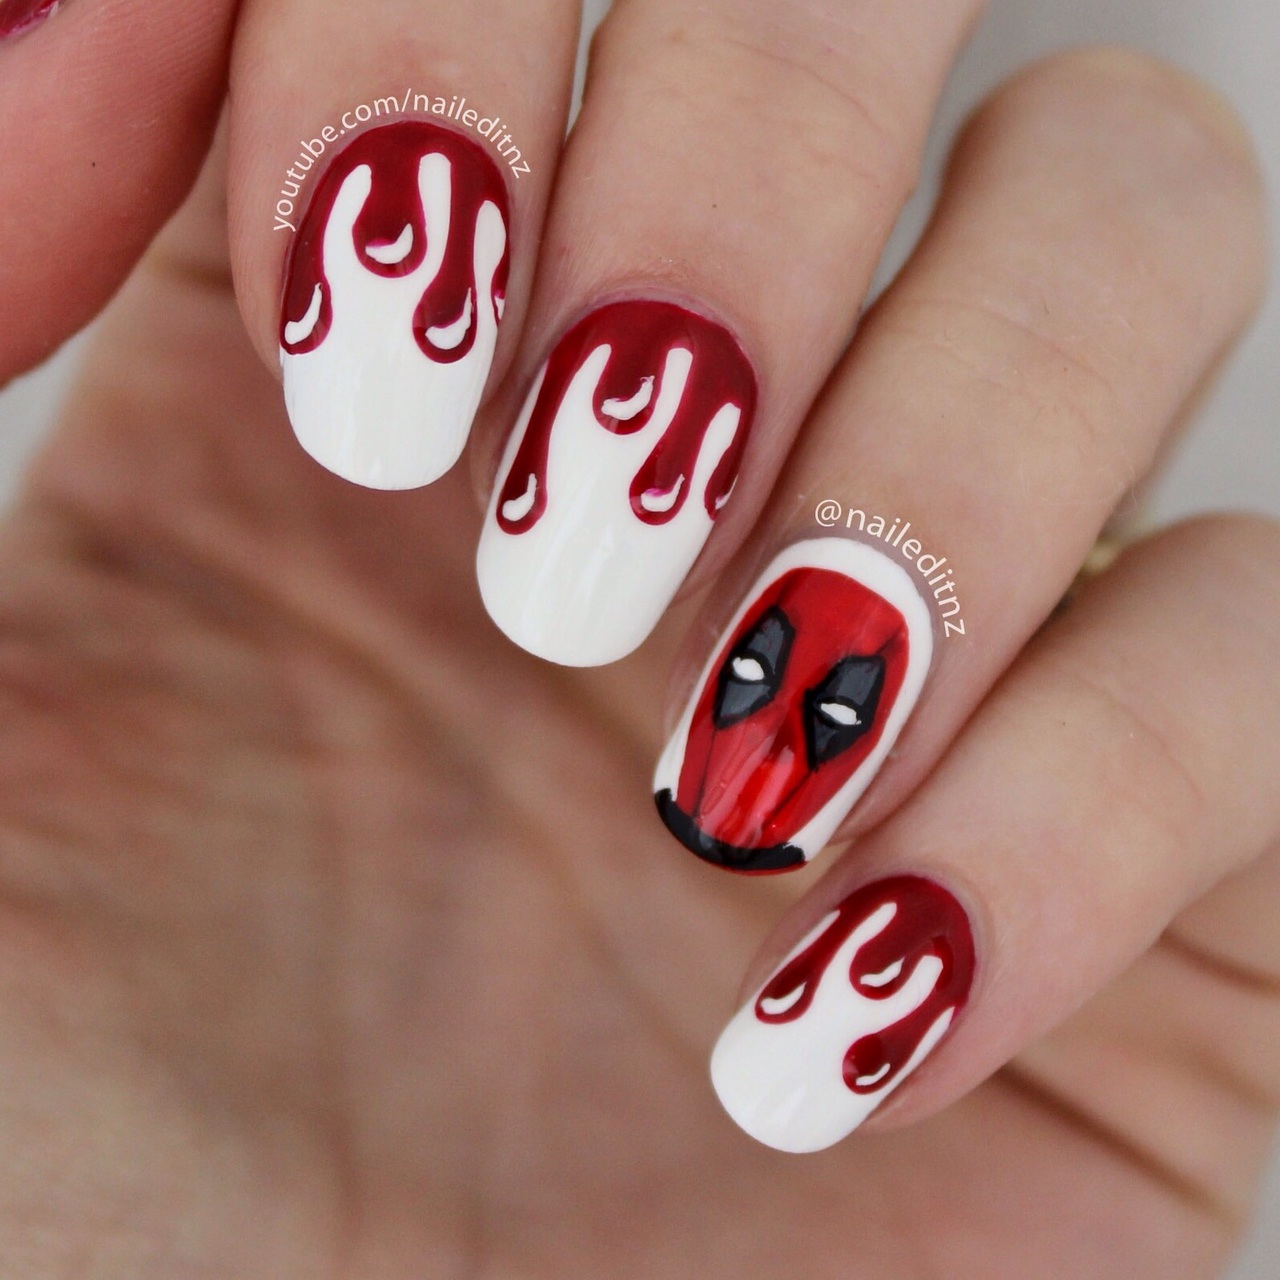 Deadpool nail art the full tutorial is on the nailed it nz deadpool nail art the full tutorial is on the nailed it nz youtube channel prinsesfo Gallery